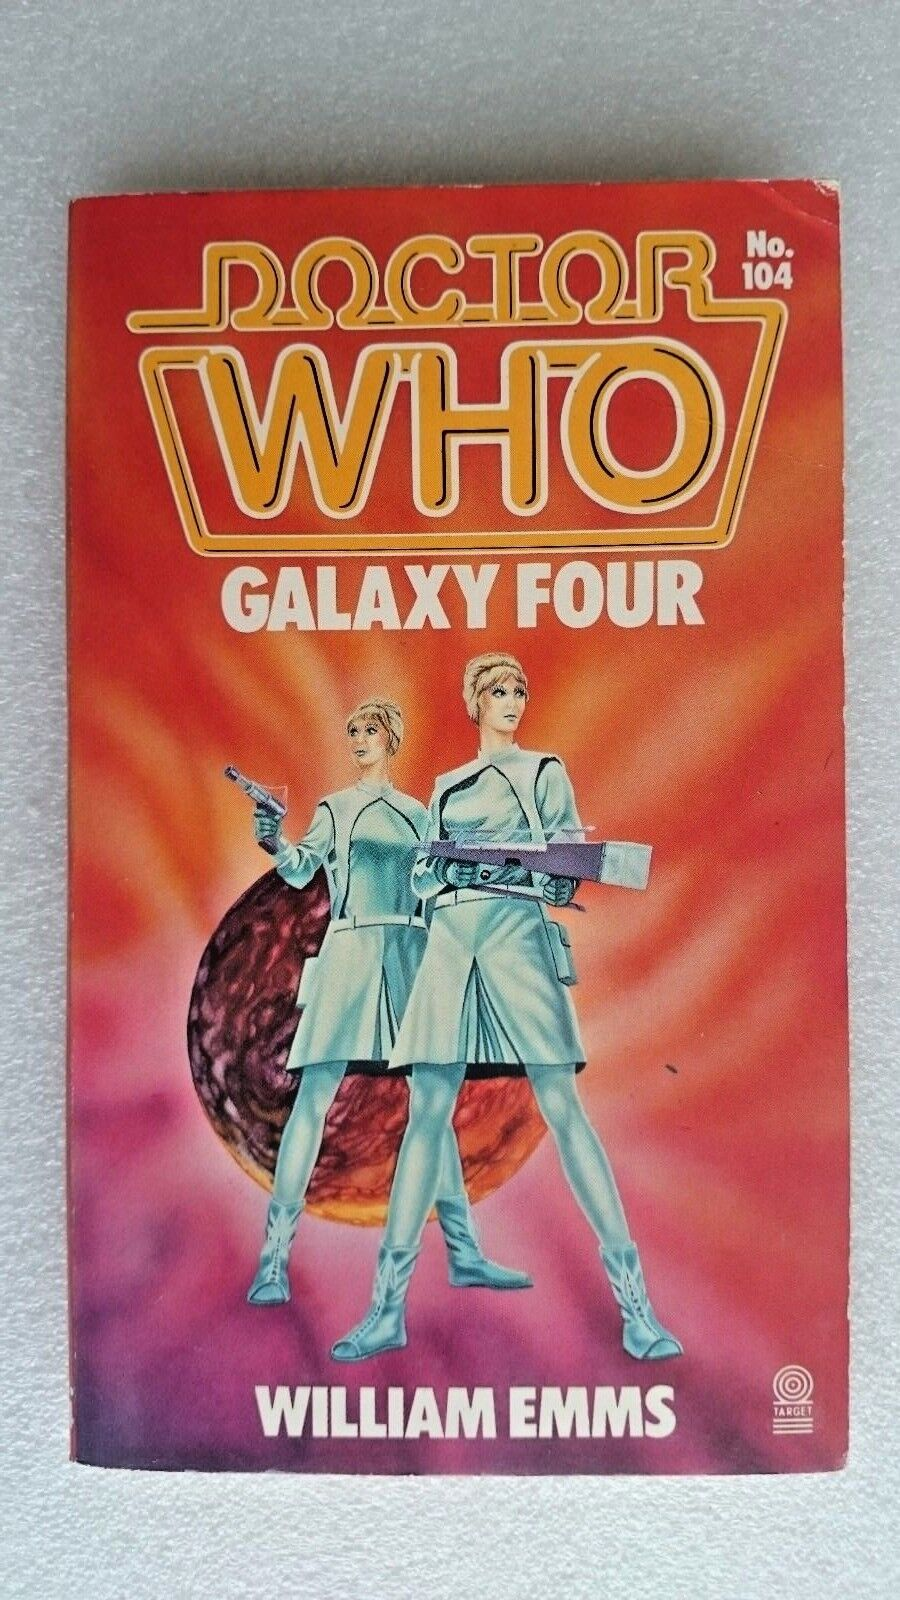 Doctor Who-Galaxy Four by William Emms (Paperback, 1986) - 1st Edition